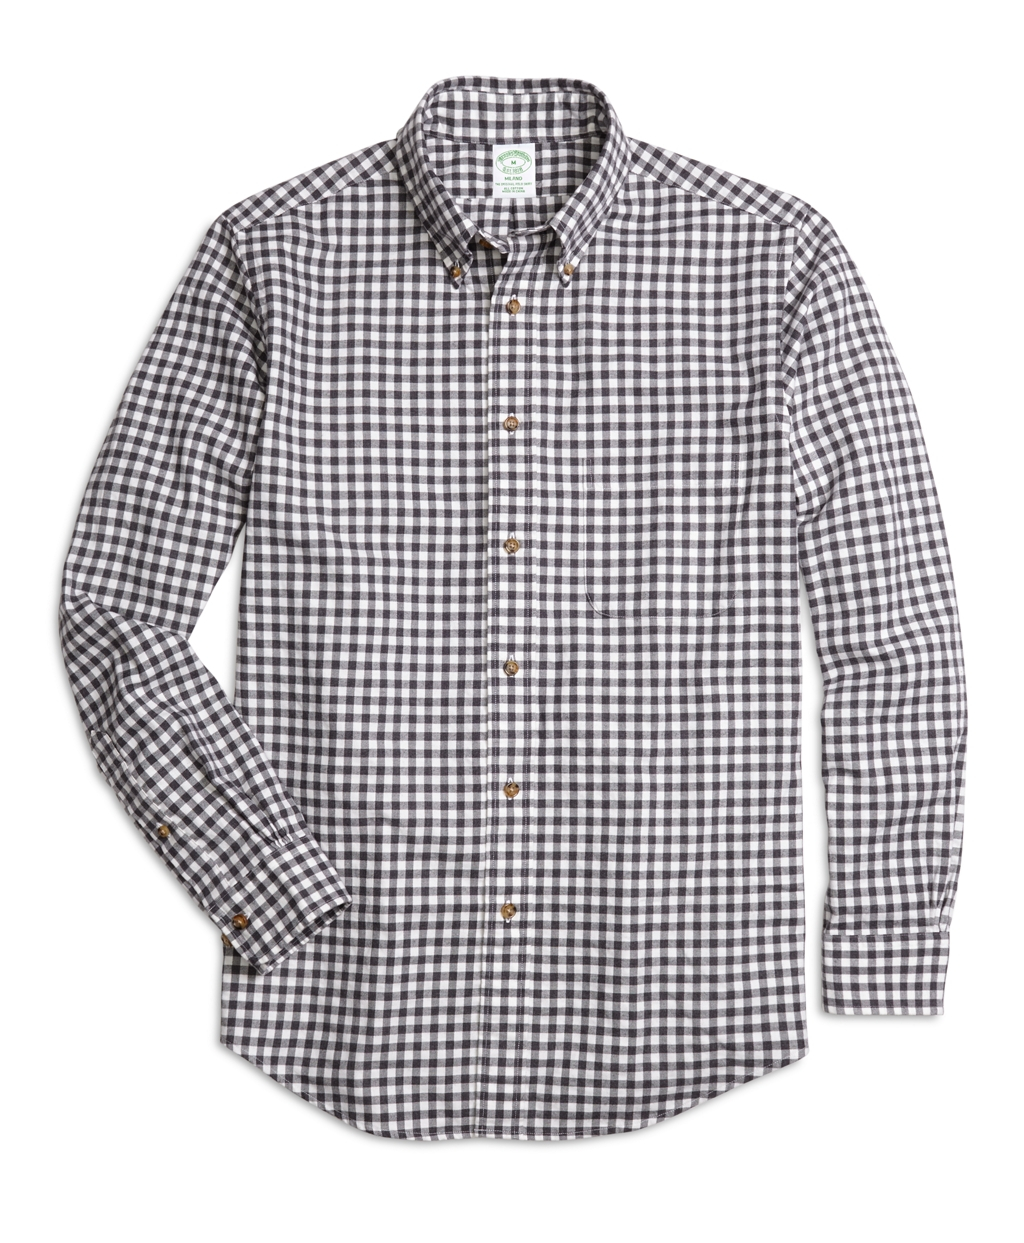 Brooks brothers milano fit flannel gingham sport shirt in for Brooks brothers sports shirts